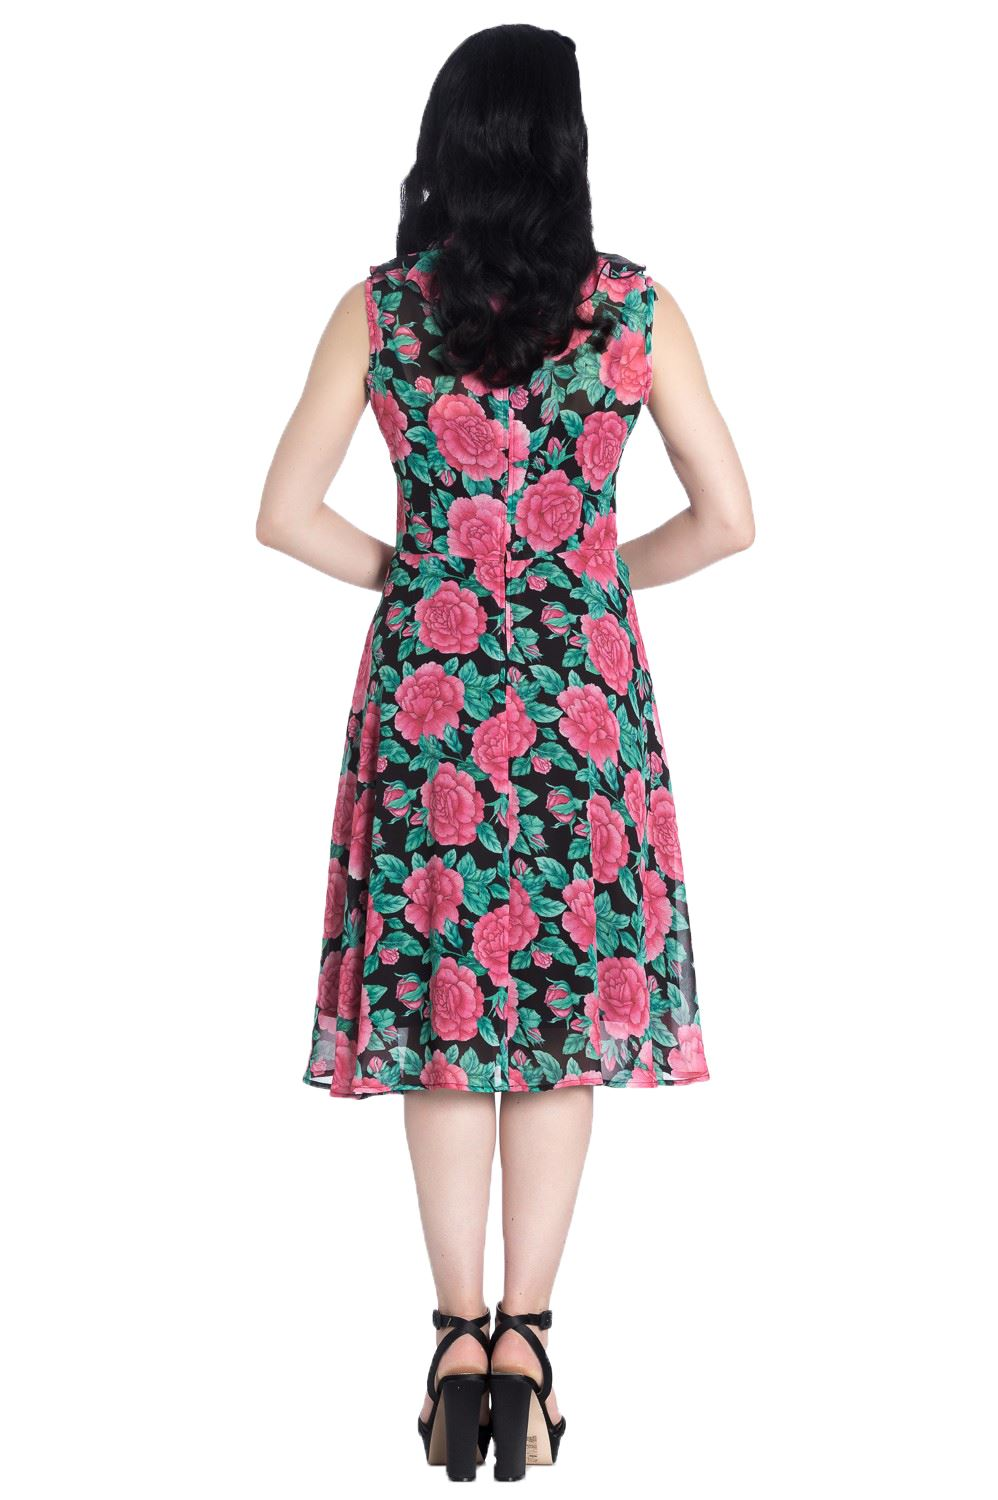 Hell Bunny Eden Rose Floral Duel Layer Dress REDUCED TO CLEAR RRP £51.99